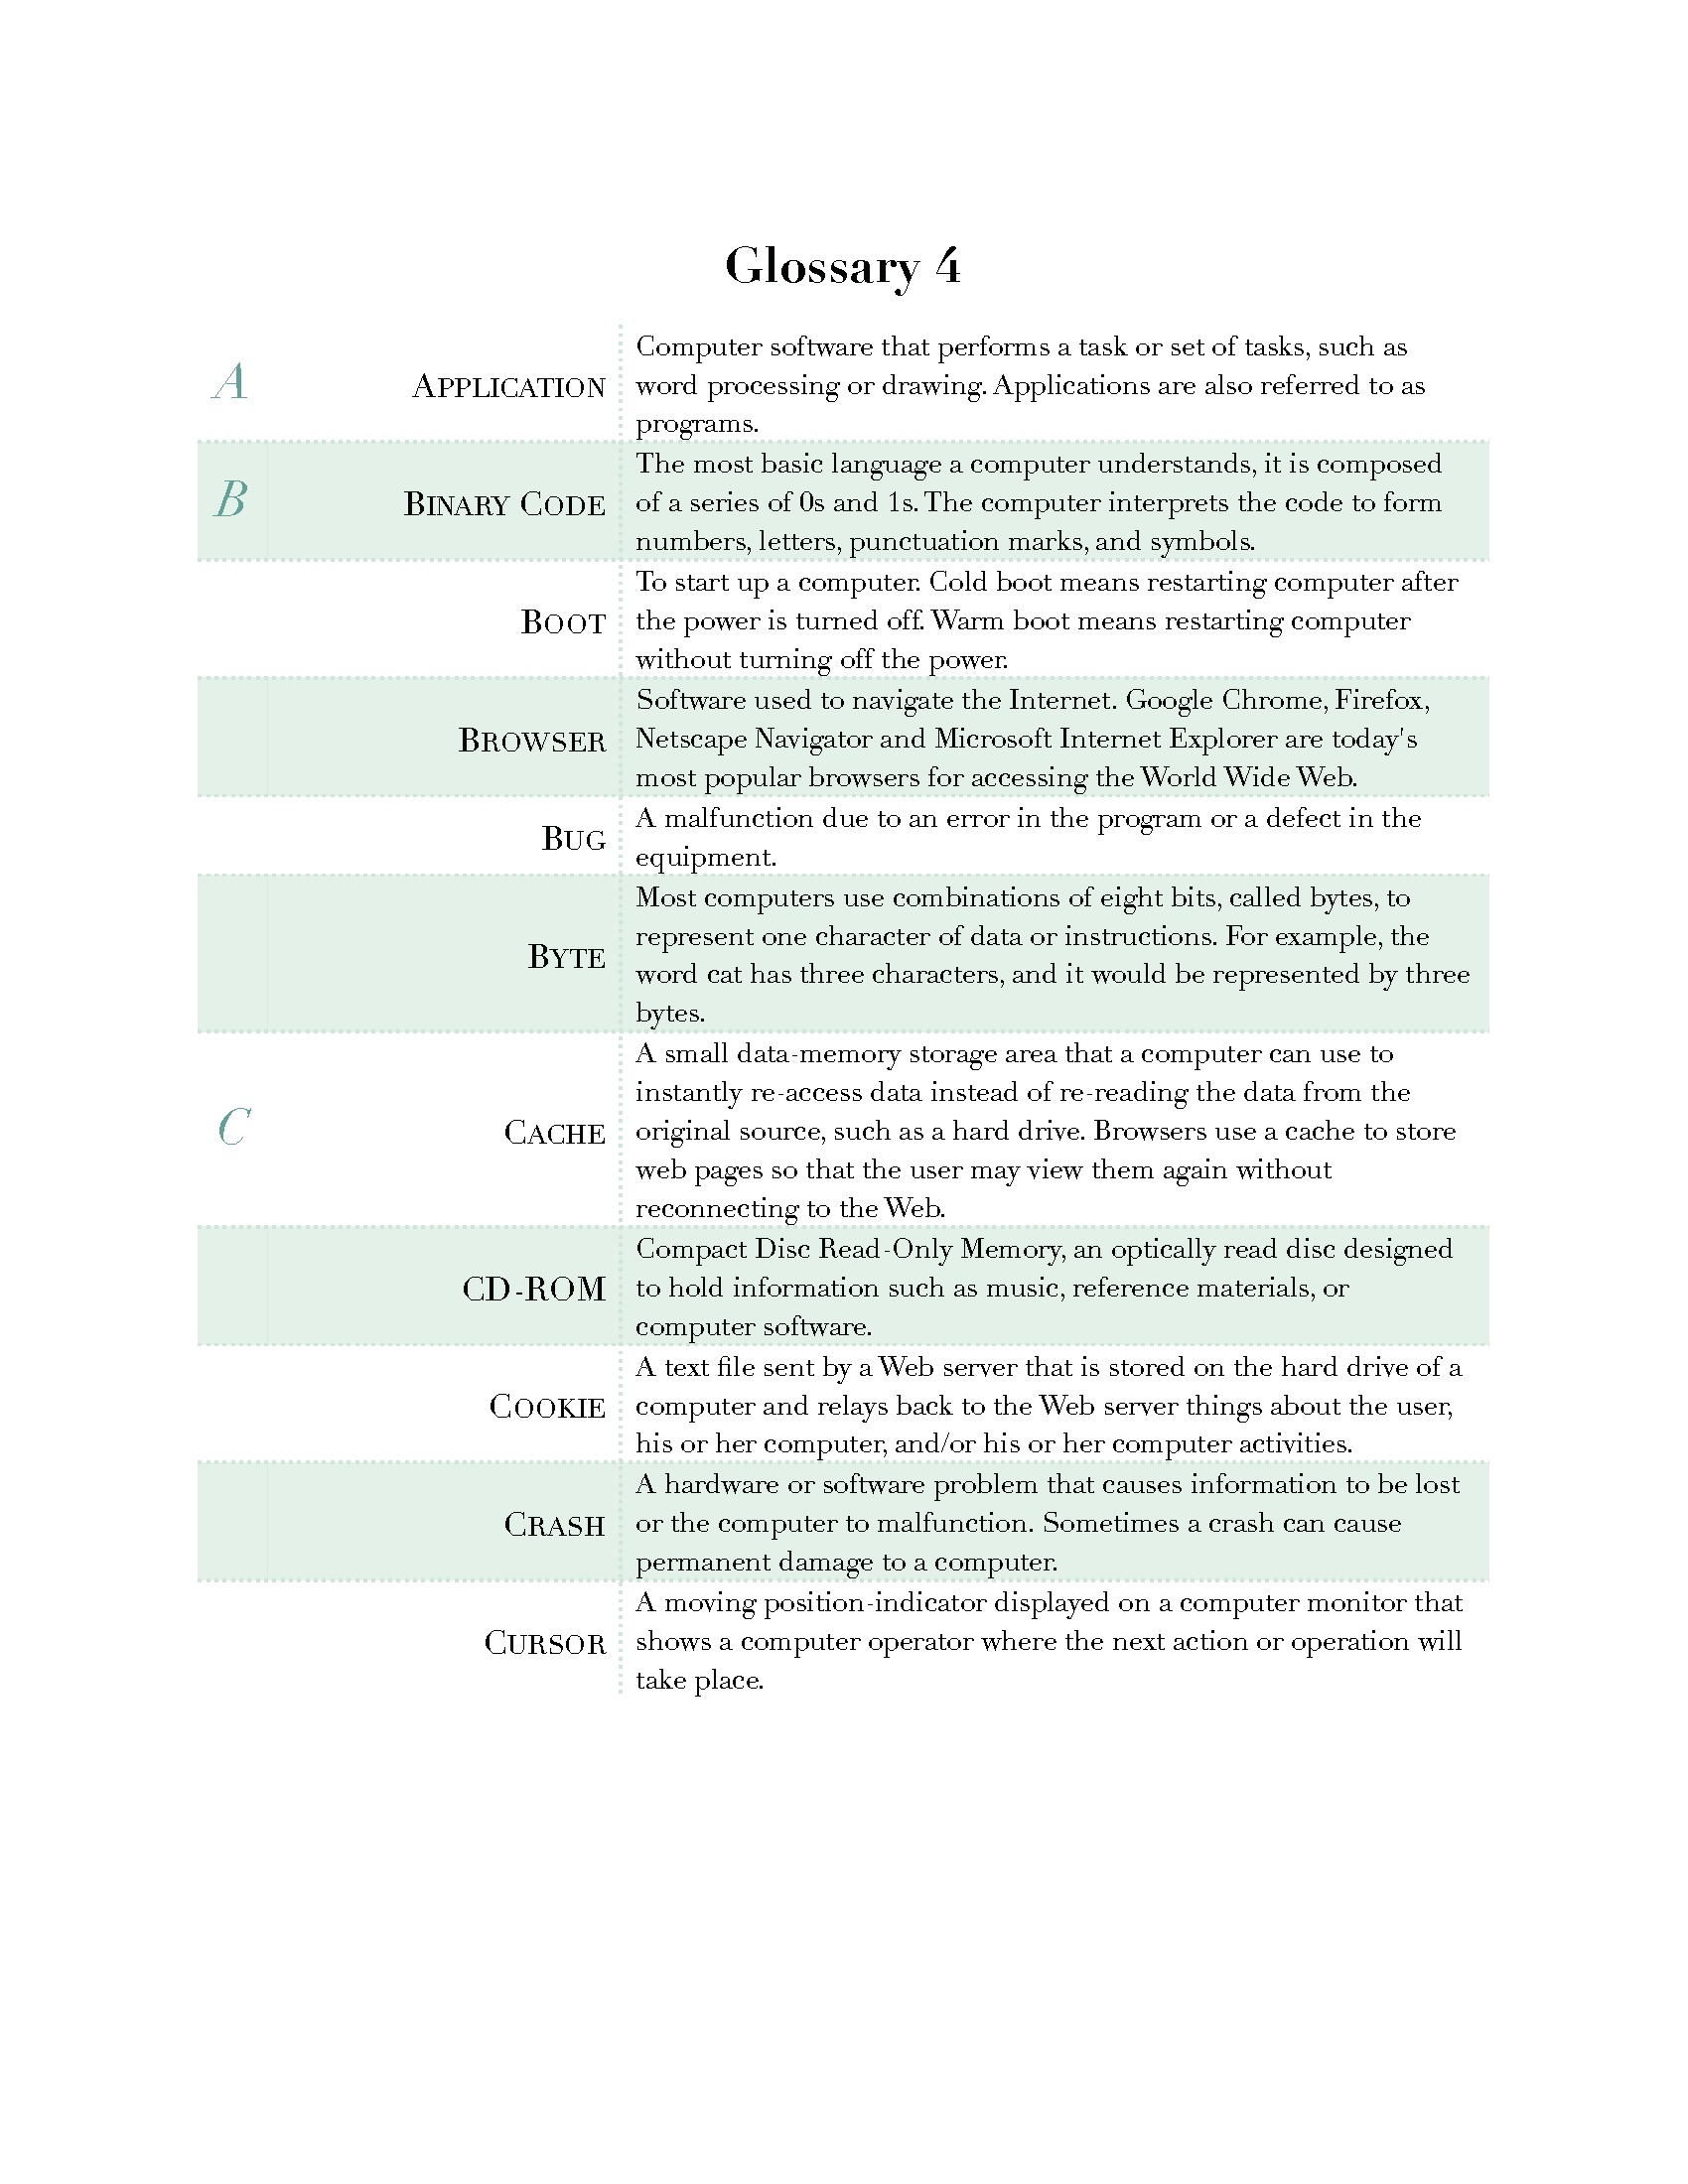 Glossary Template Page 04